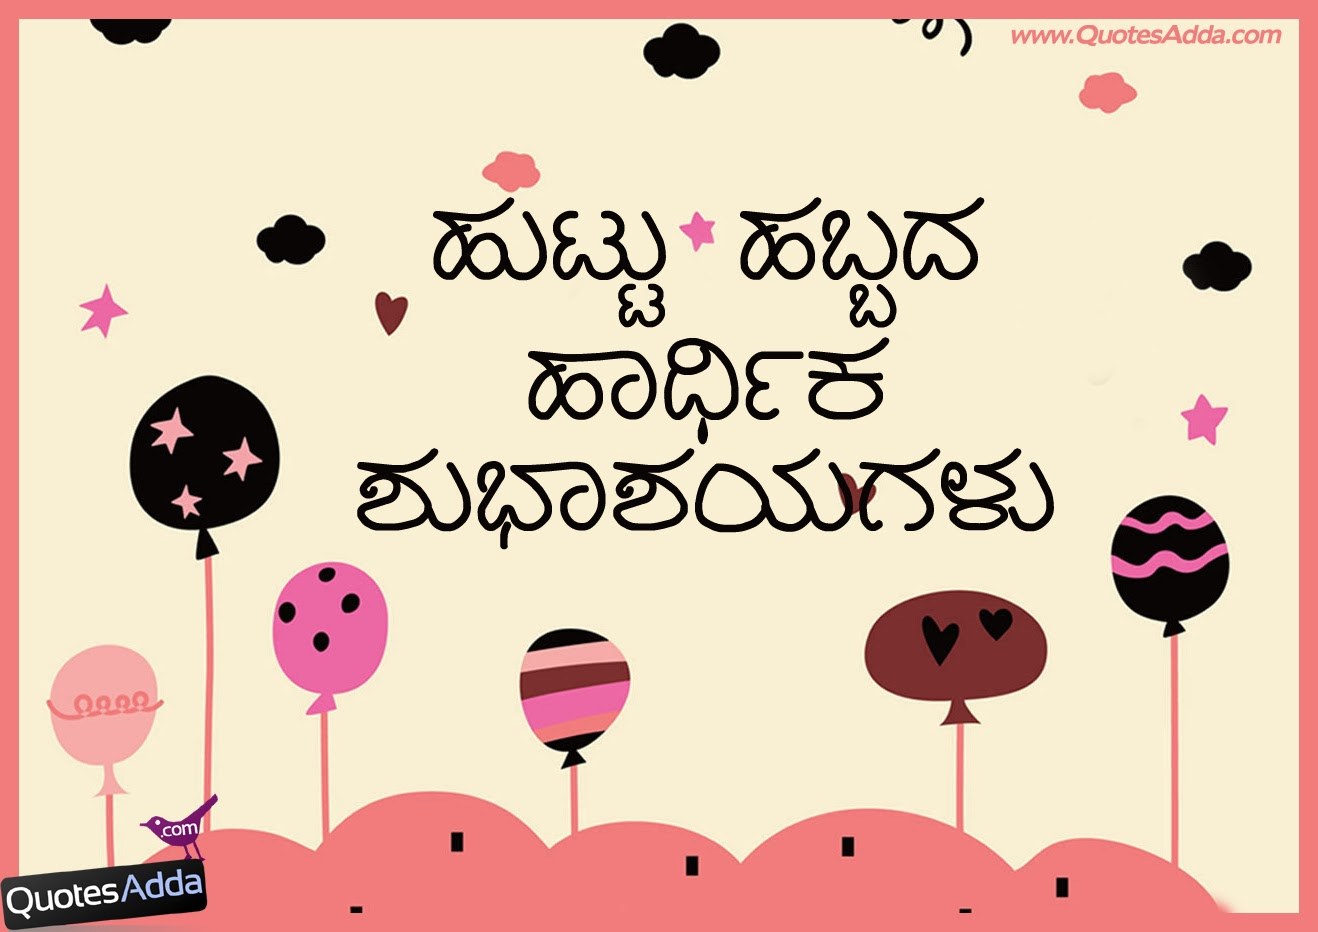 Spanish Birthday Quotes For A Friend Quotesgram Happy birthday wishes in kannada, sending the greetings has become the necessary & tradition these days and weather its boy or girls you need to wish them so we are providing the best happy birthday wishes in kannada, kannada is the language of indian state karnataka. spanish birthday quotes for a friend